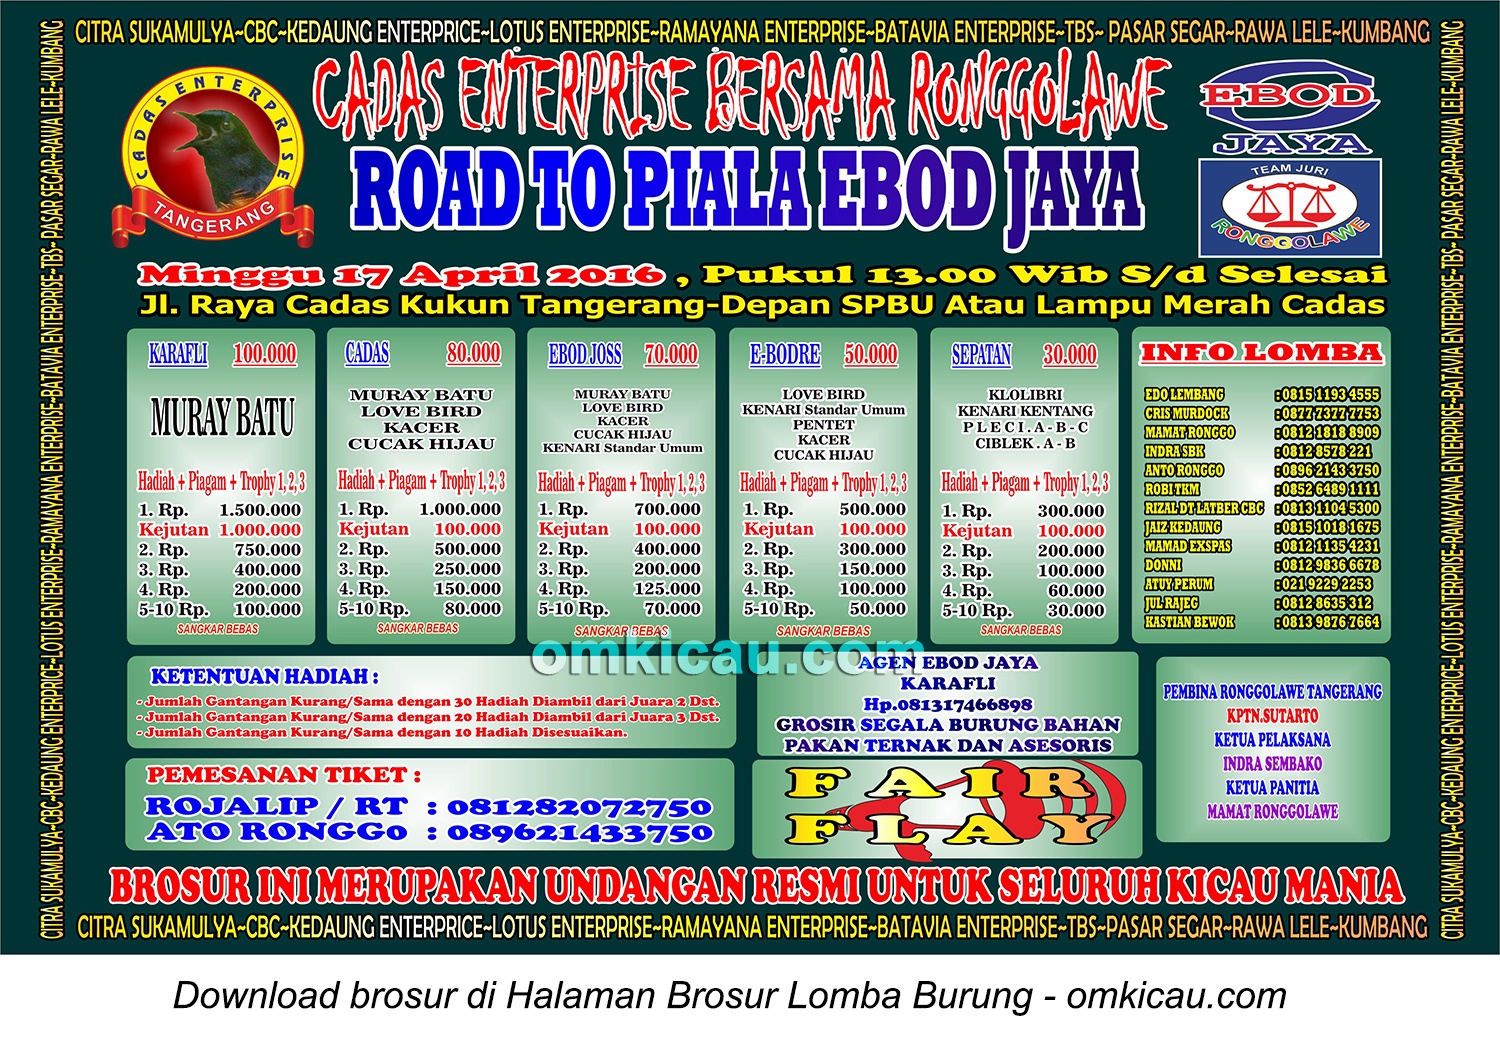 Brosur Road to Piala Ebod Jaya - Cadas Enterprise, Tangerang, 17 April 2016